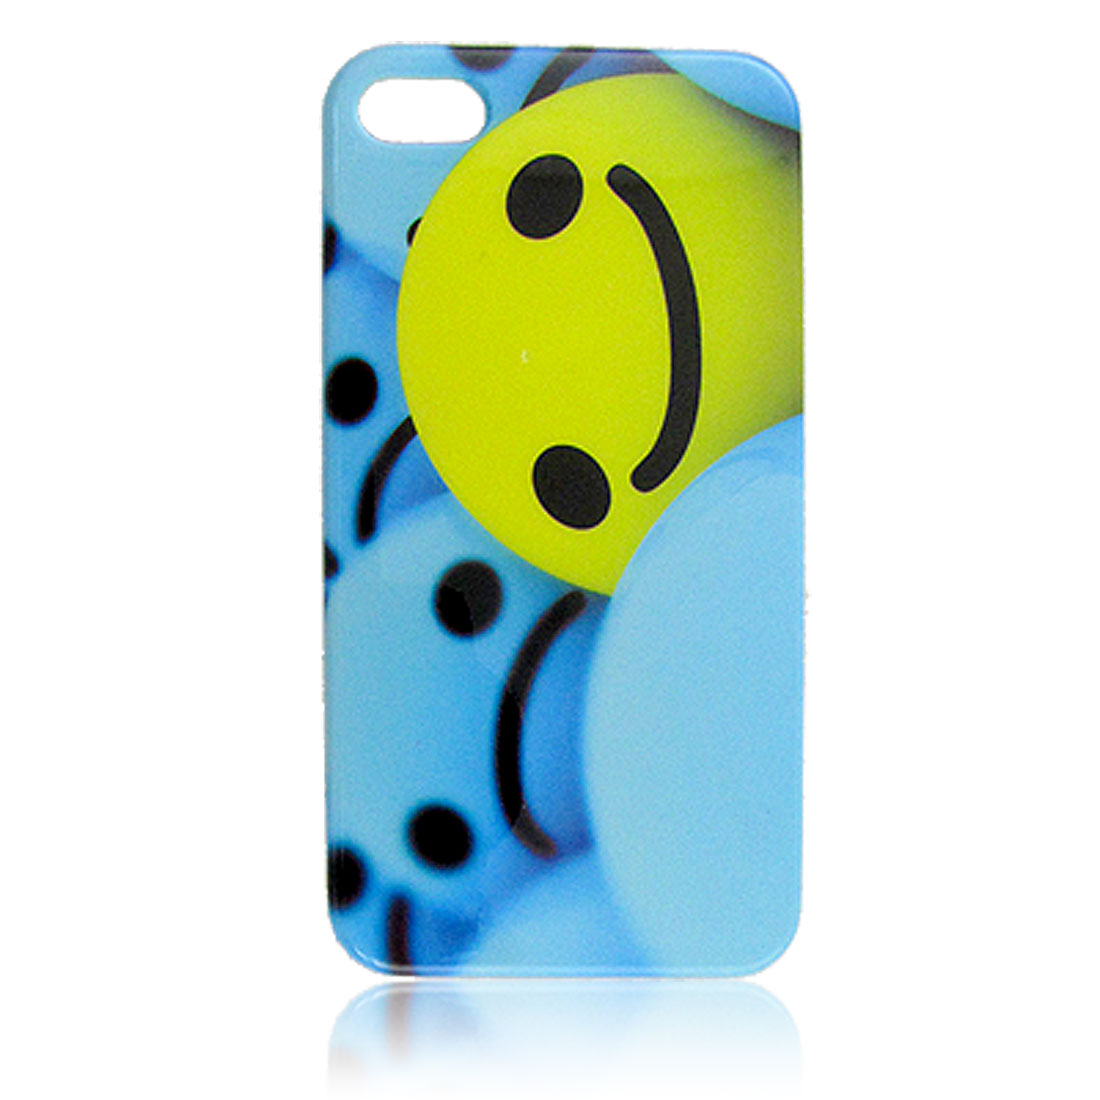 IMD Smiling Face Print Nonslip Side Back Cover for iPhone 4 4G